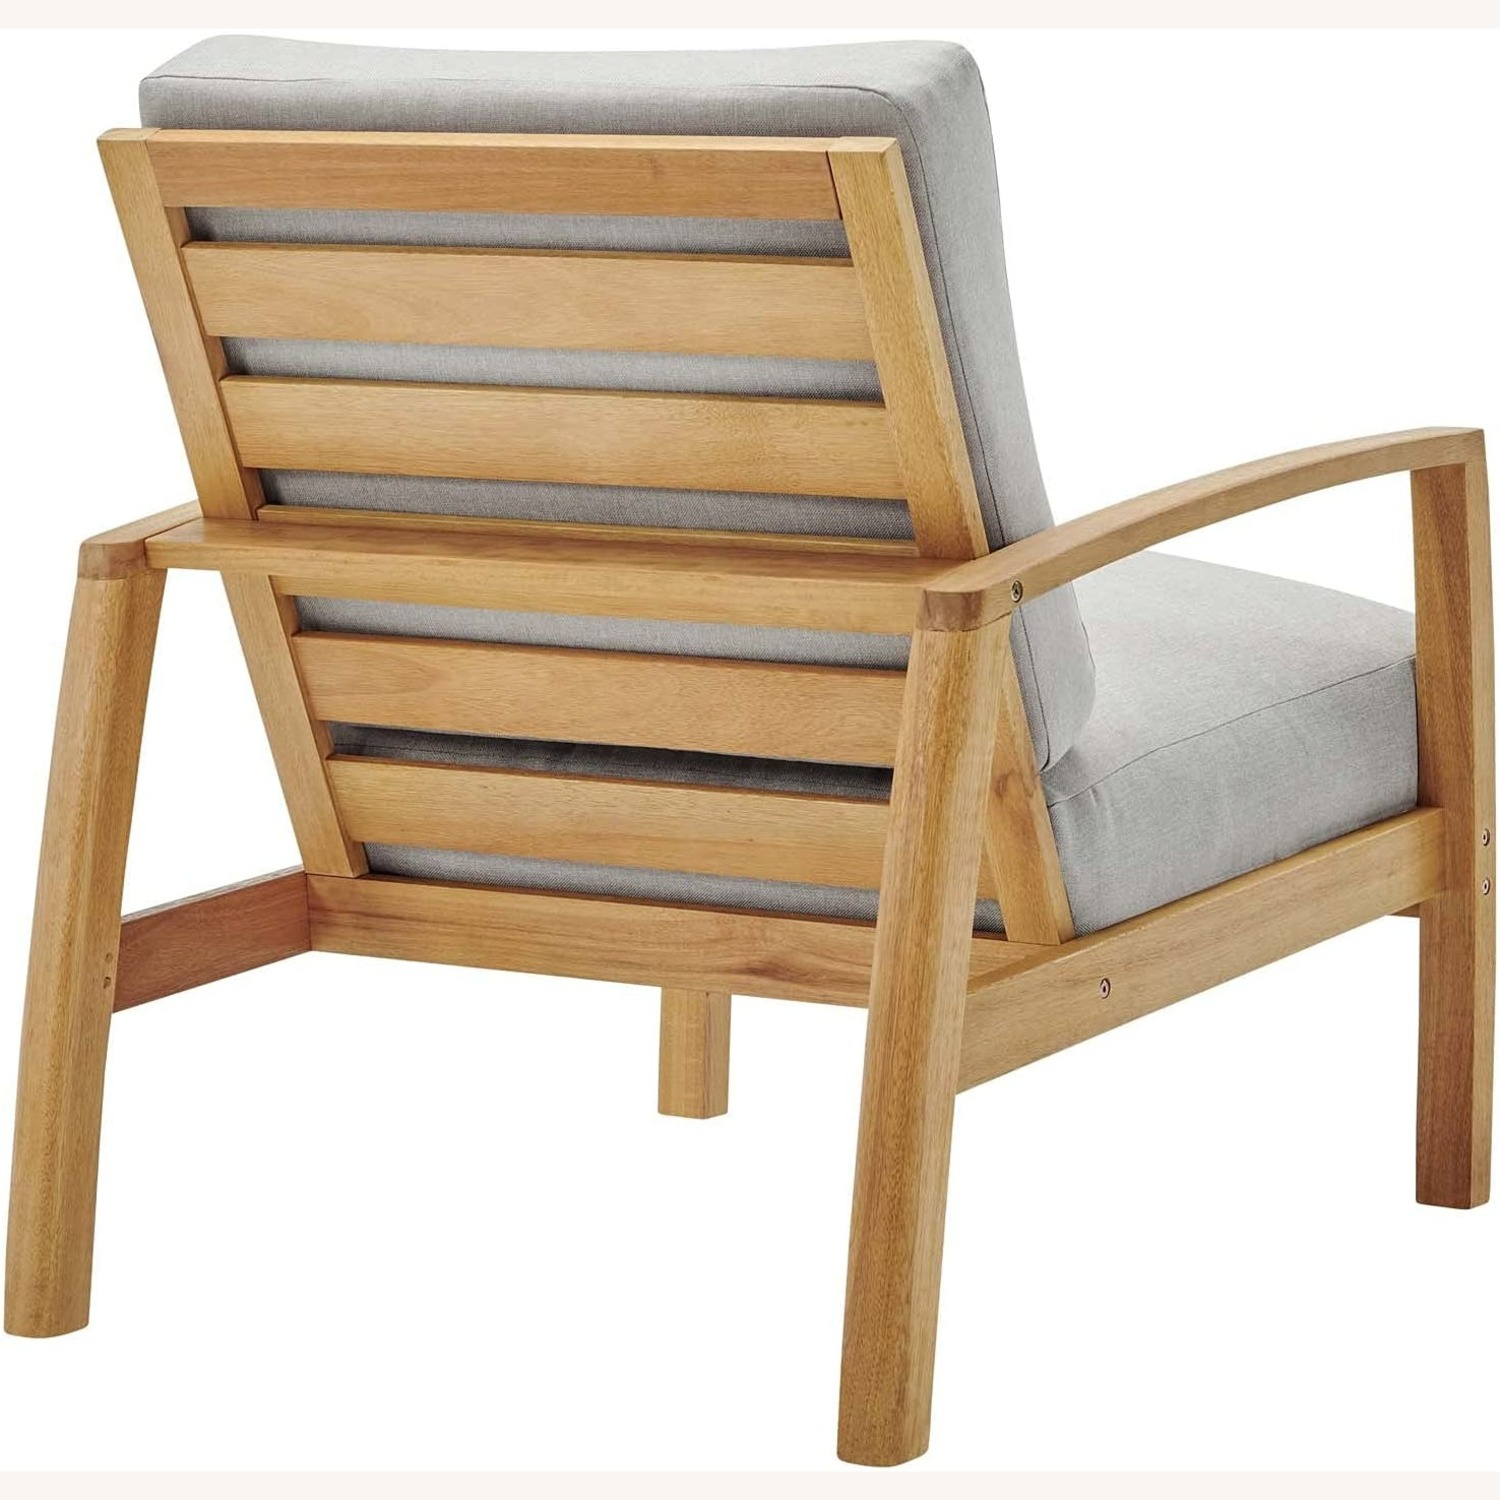 4-Piece Outdoor Patio Set In Natural Wood Finish - image-3